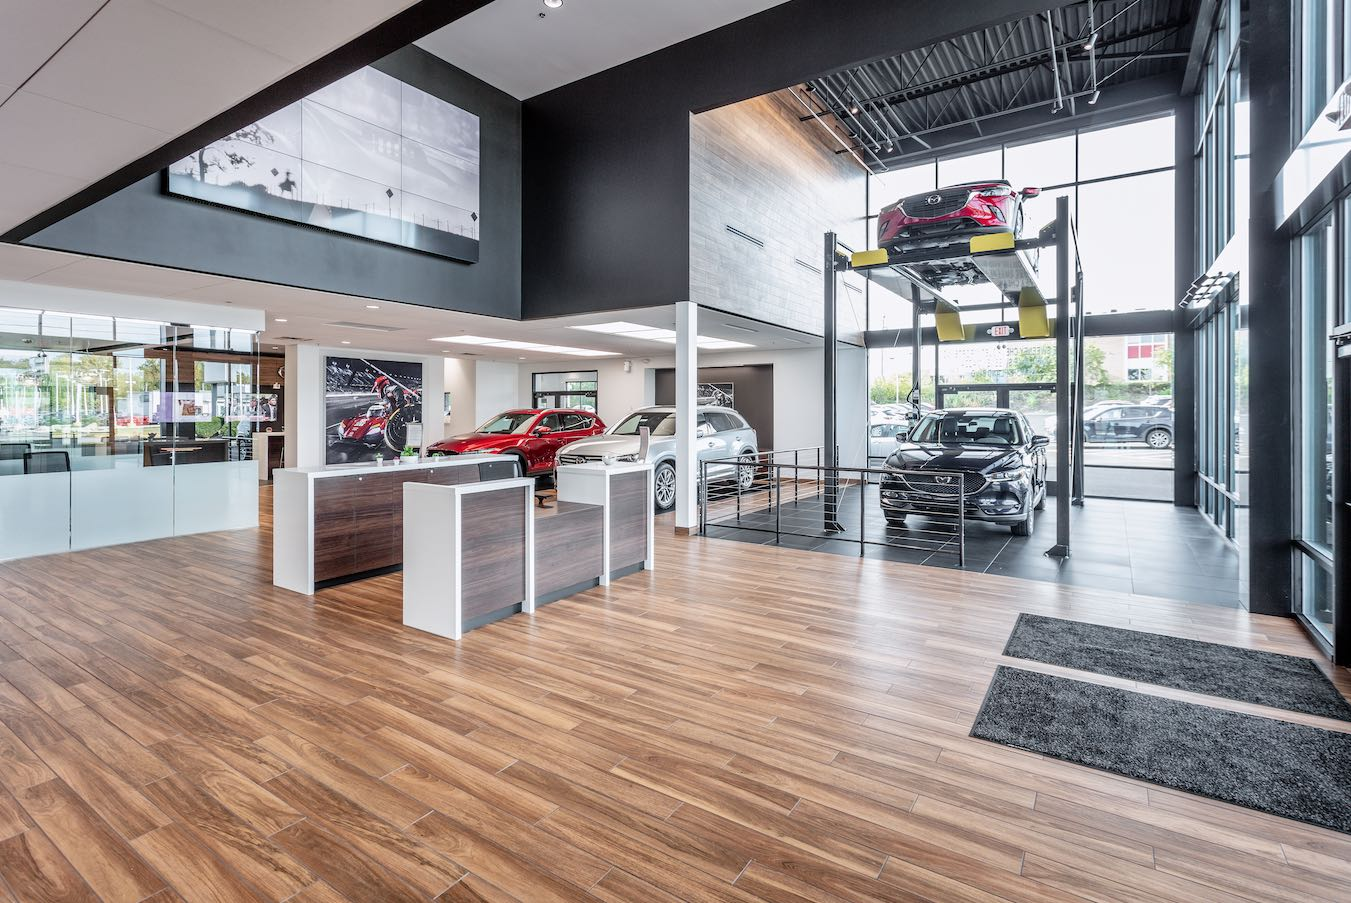 Jake Sweeney Mazda interior construction by CCC